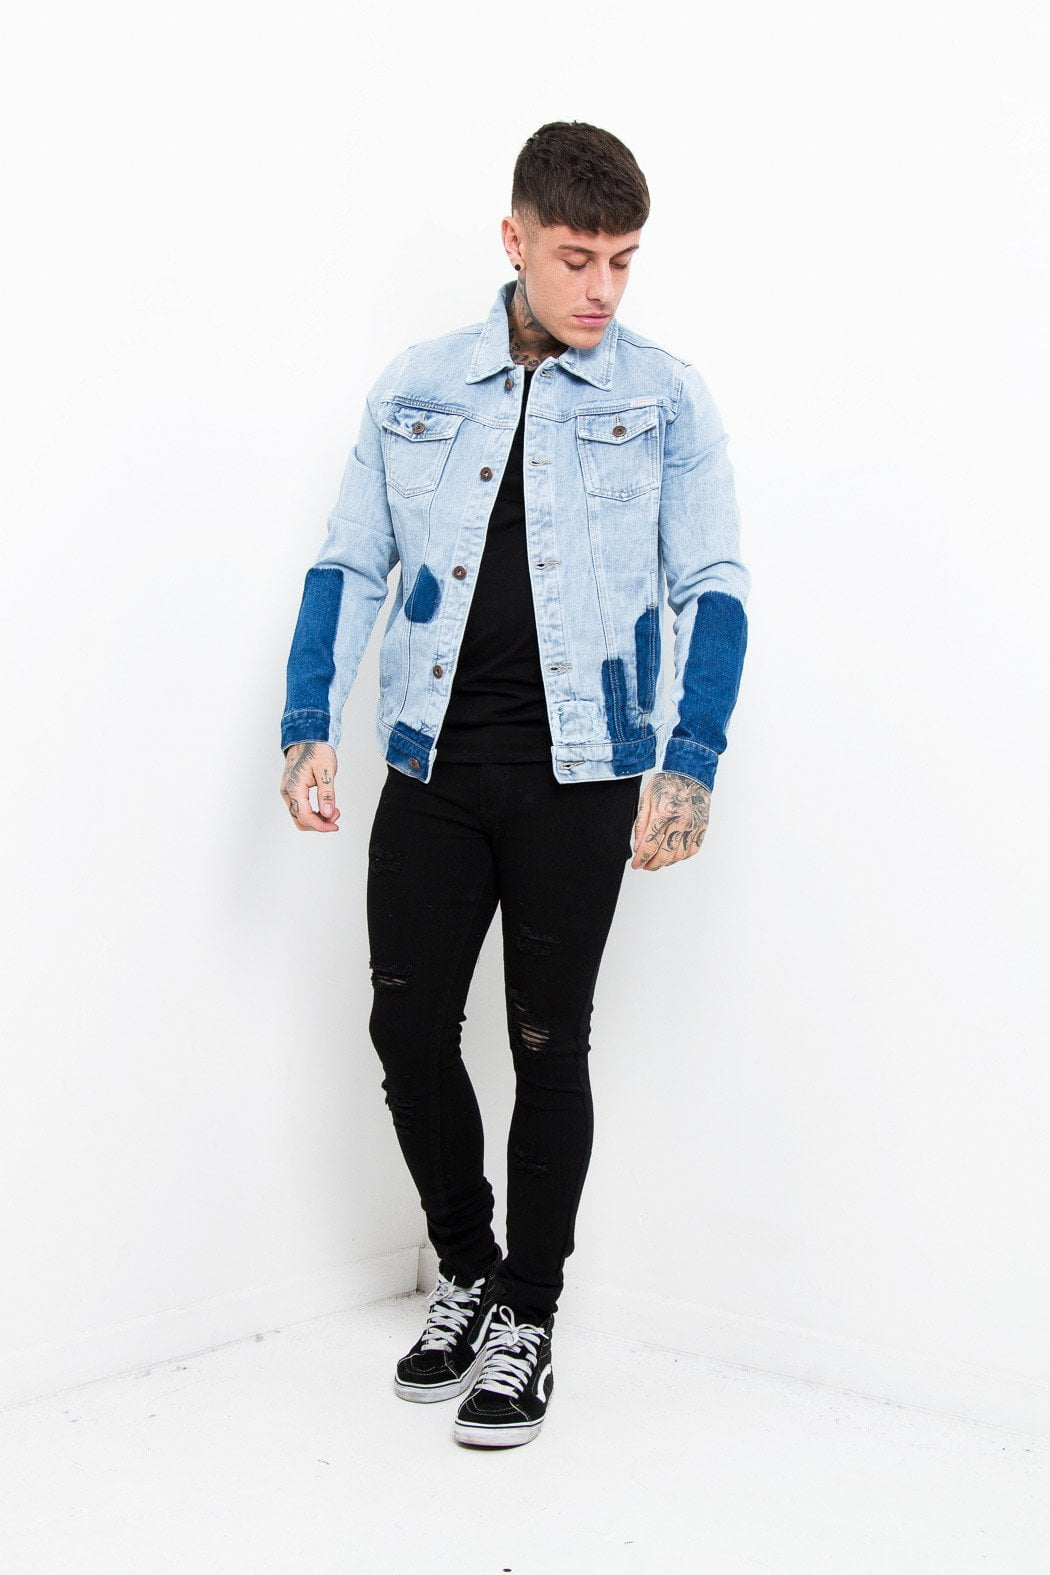 Norton Patchwork Denim Jacket In Light Indigo - Liquor N Poker  Liquor N Poker